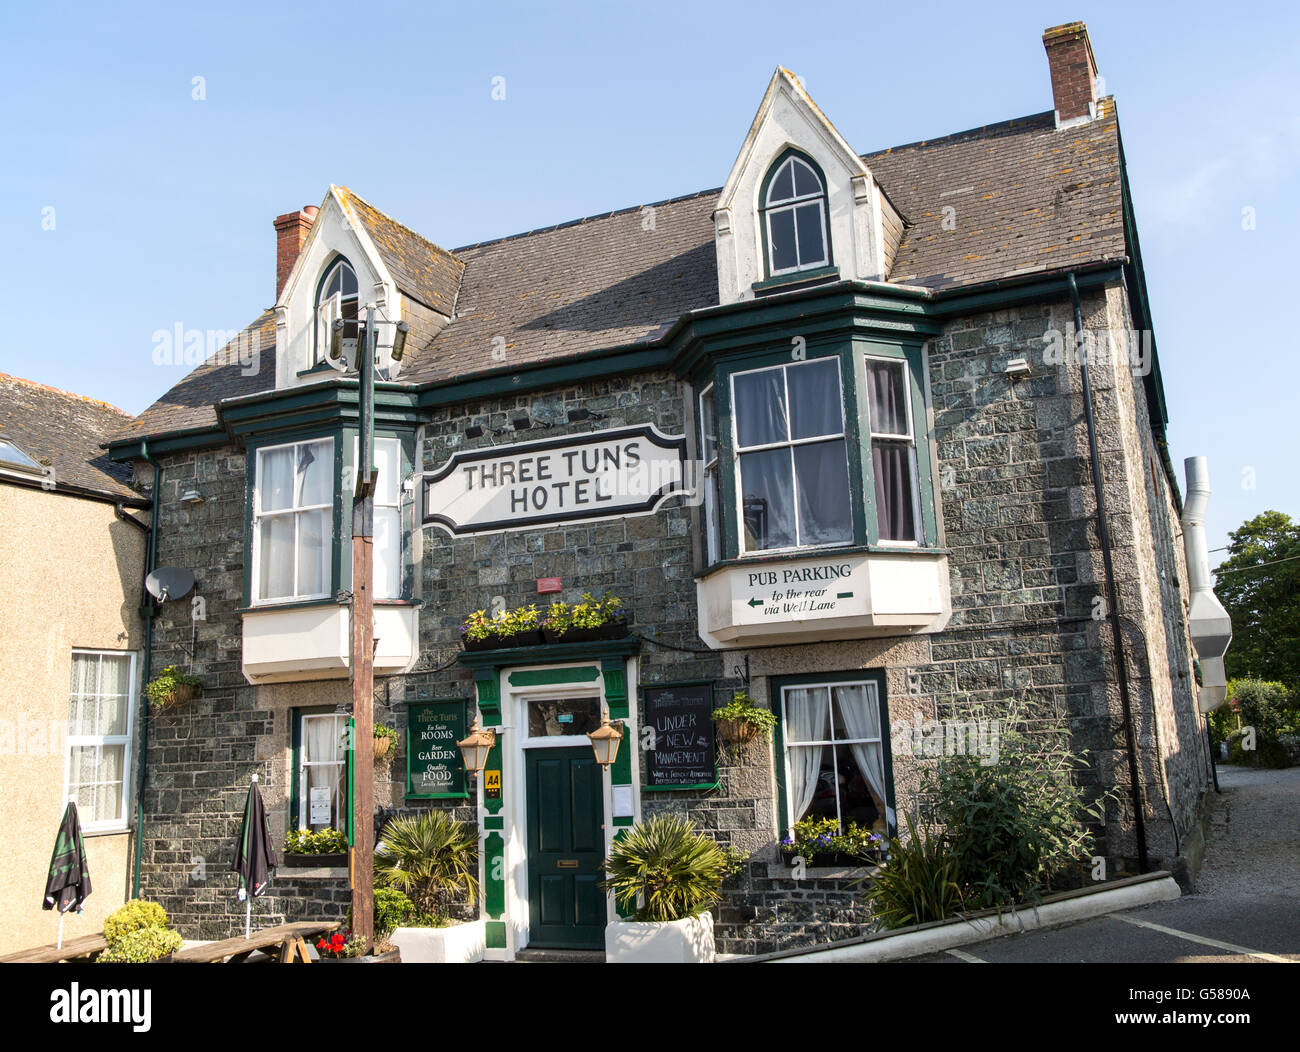 Three Tuns hotel traditional village pub building, St Keverne, Lizard Peninsula, Cornwall, England, UK - Stock Image